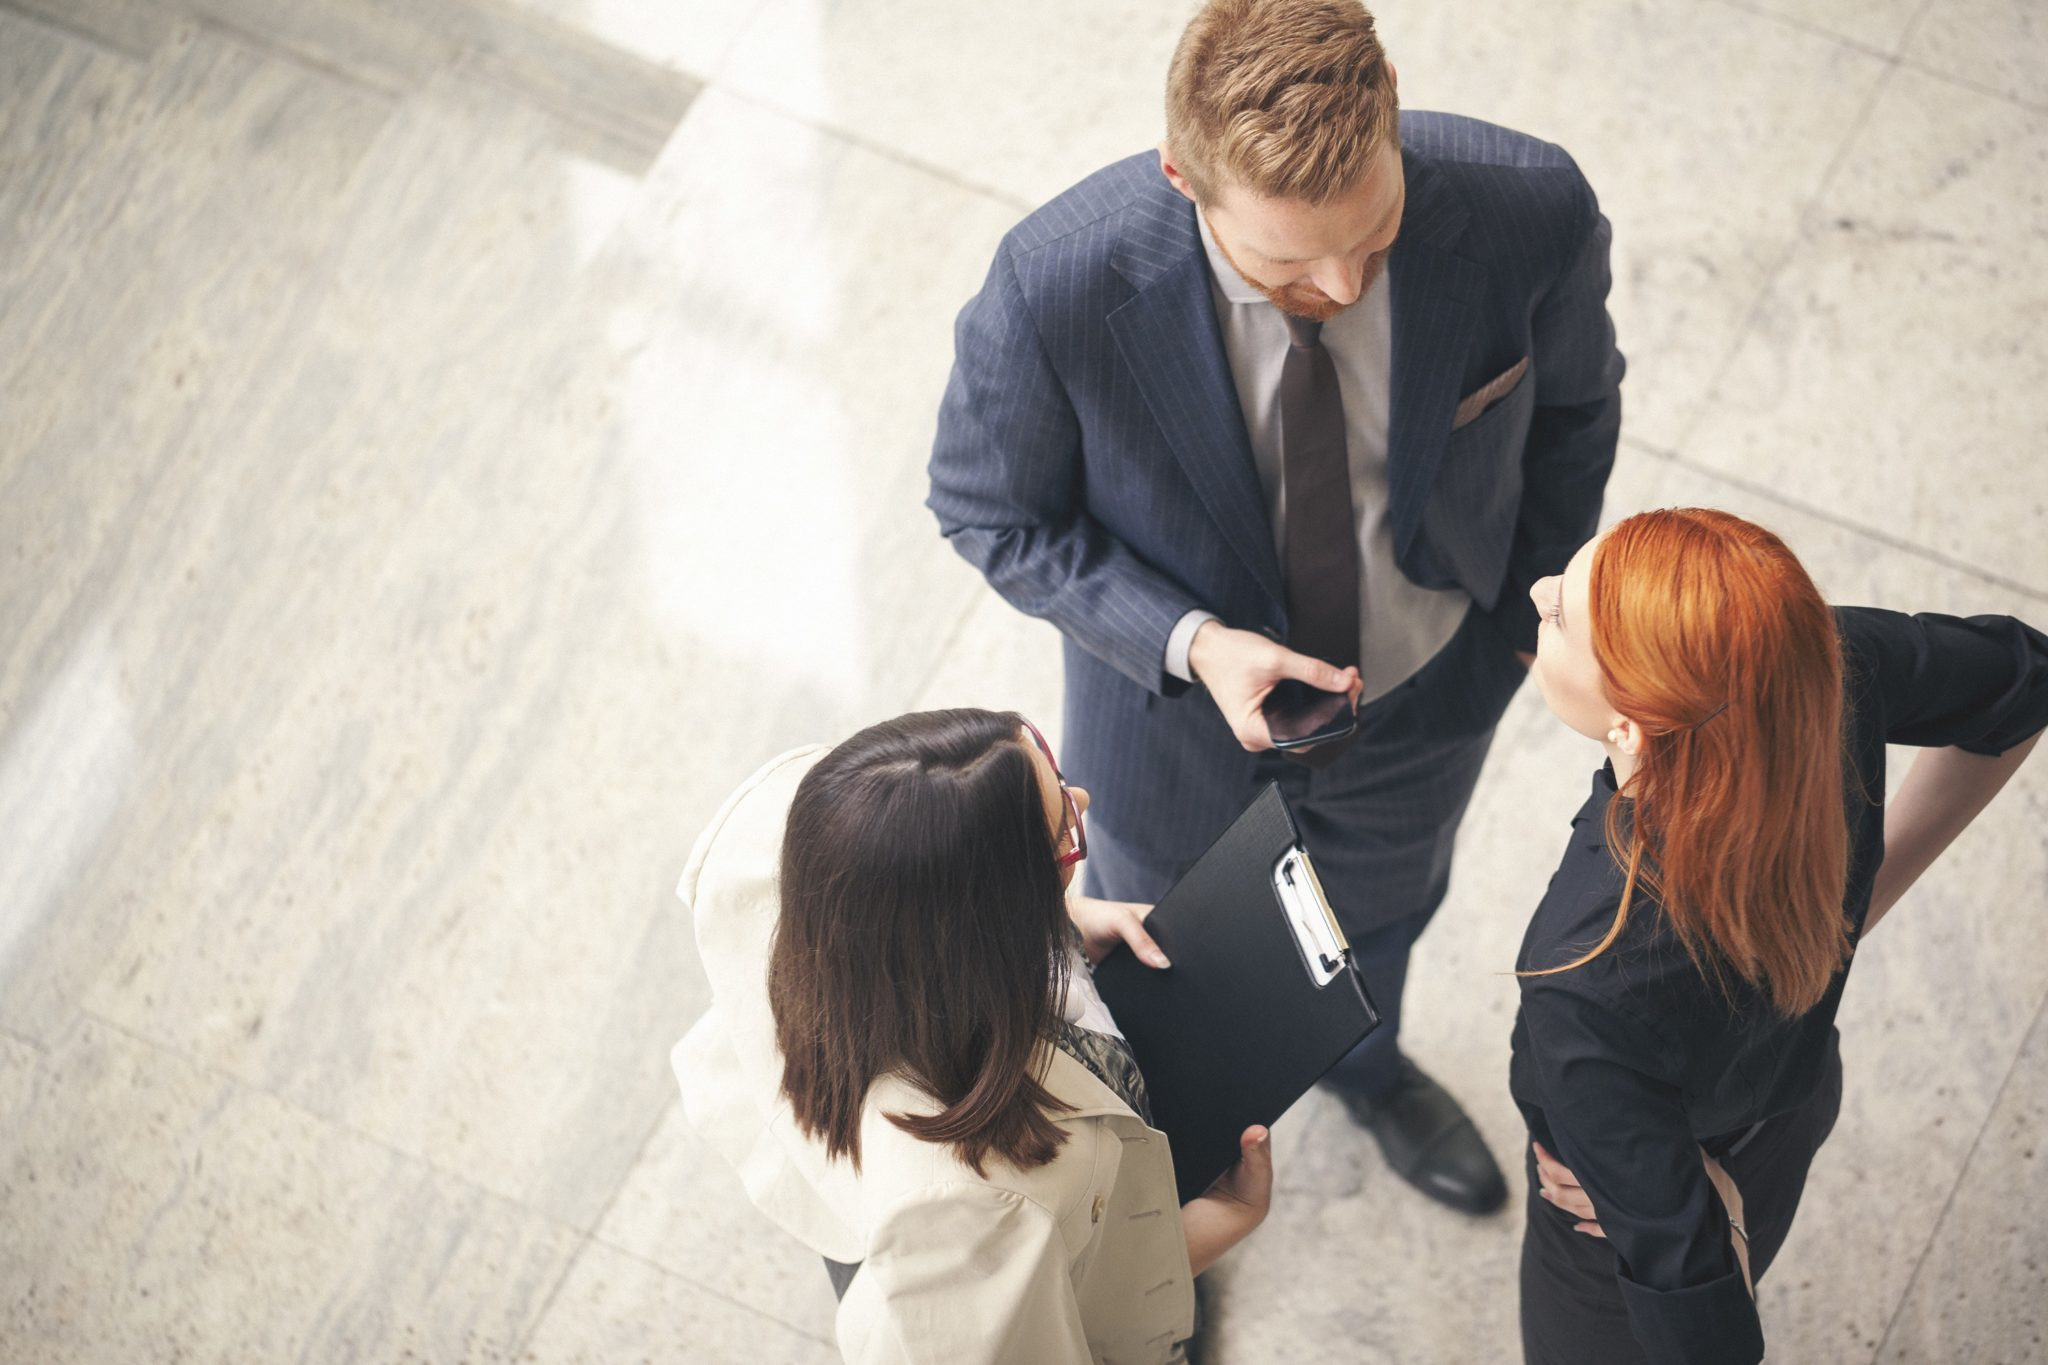 RMT_business_people_talking-2